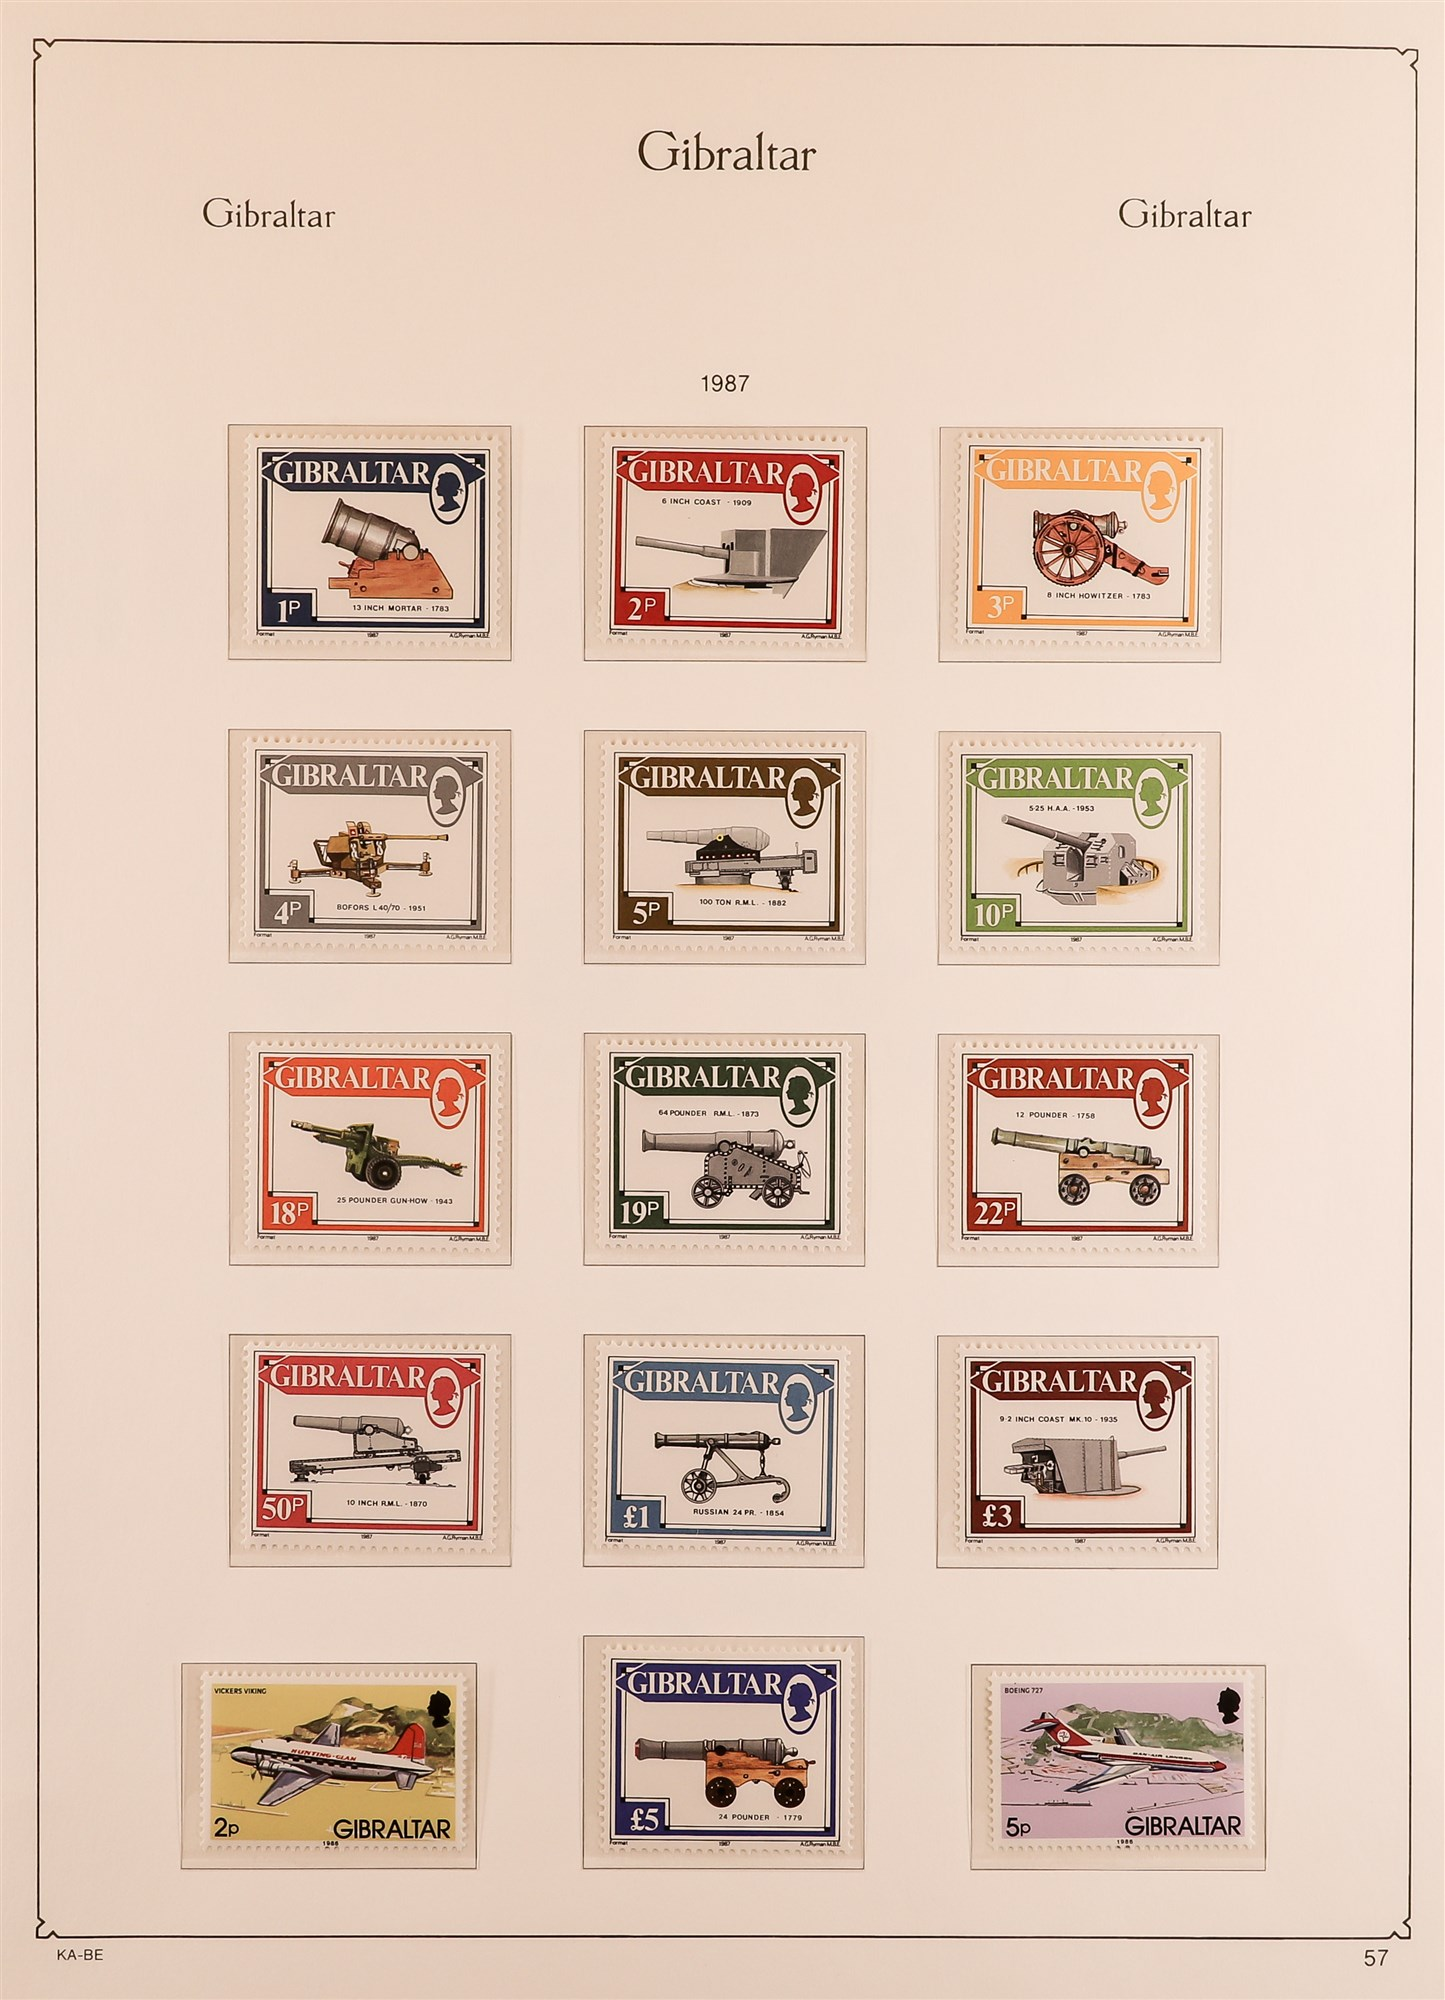 GIBRALTAR 1953-89 collection in a KA-BE album, mint incl. 1953-59 set, much of later is never hinged - Image 5 of 7